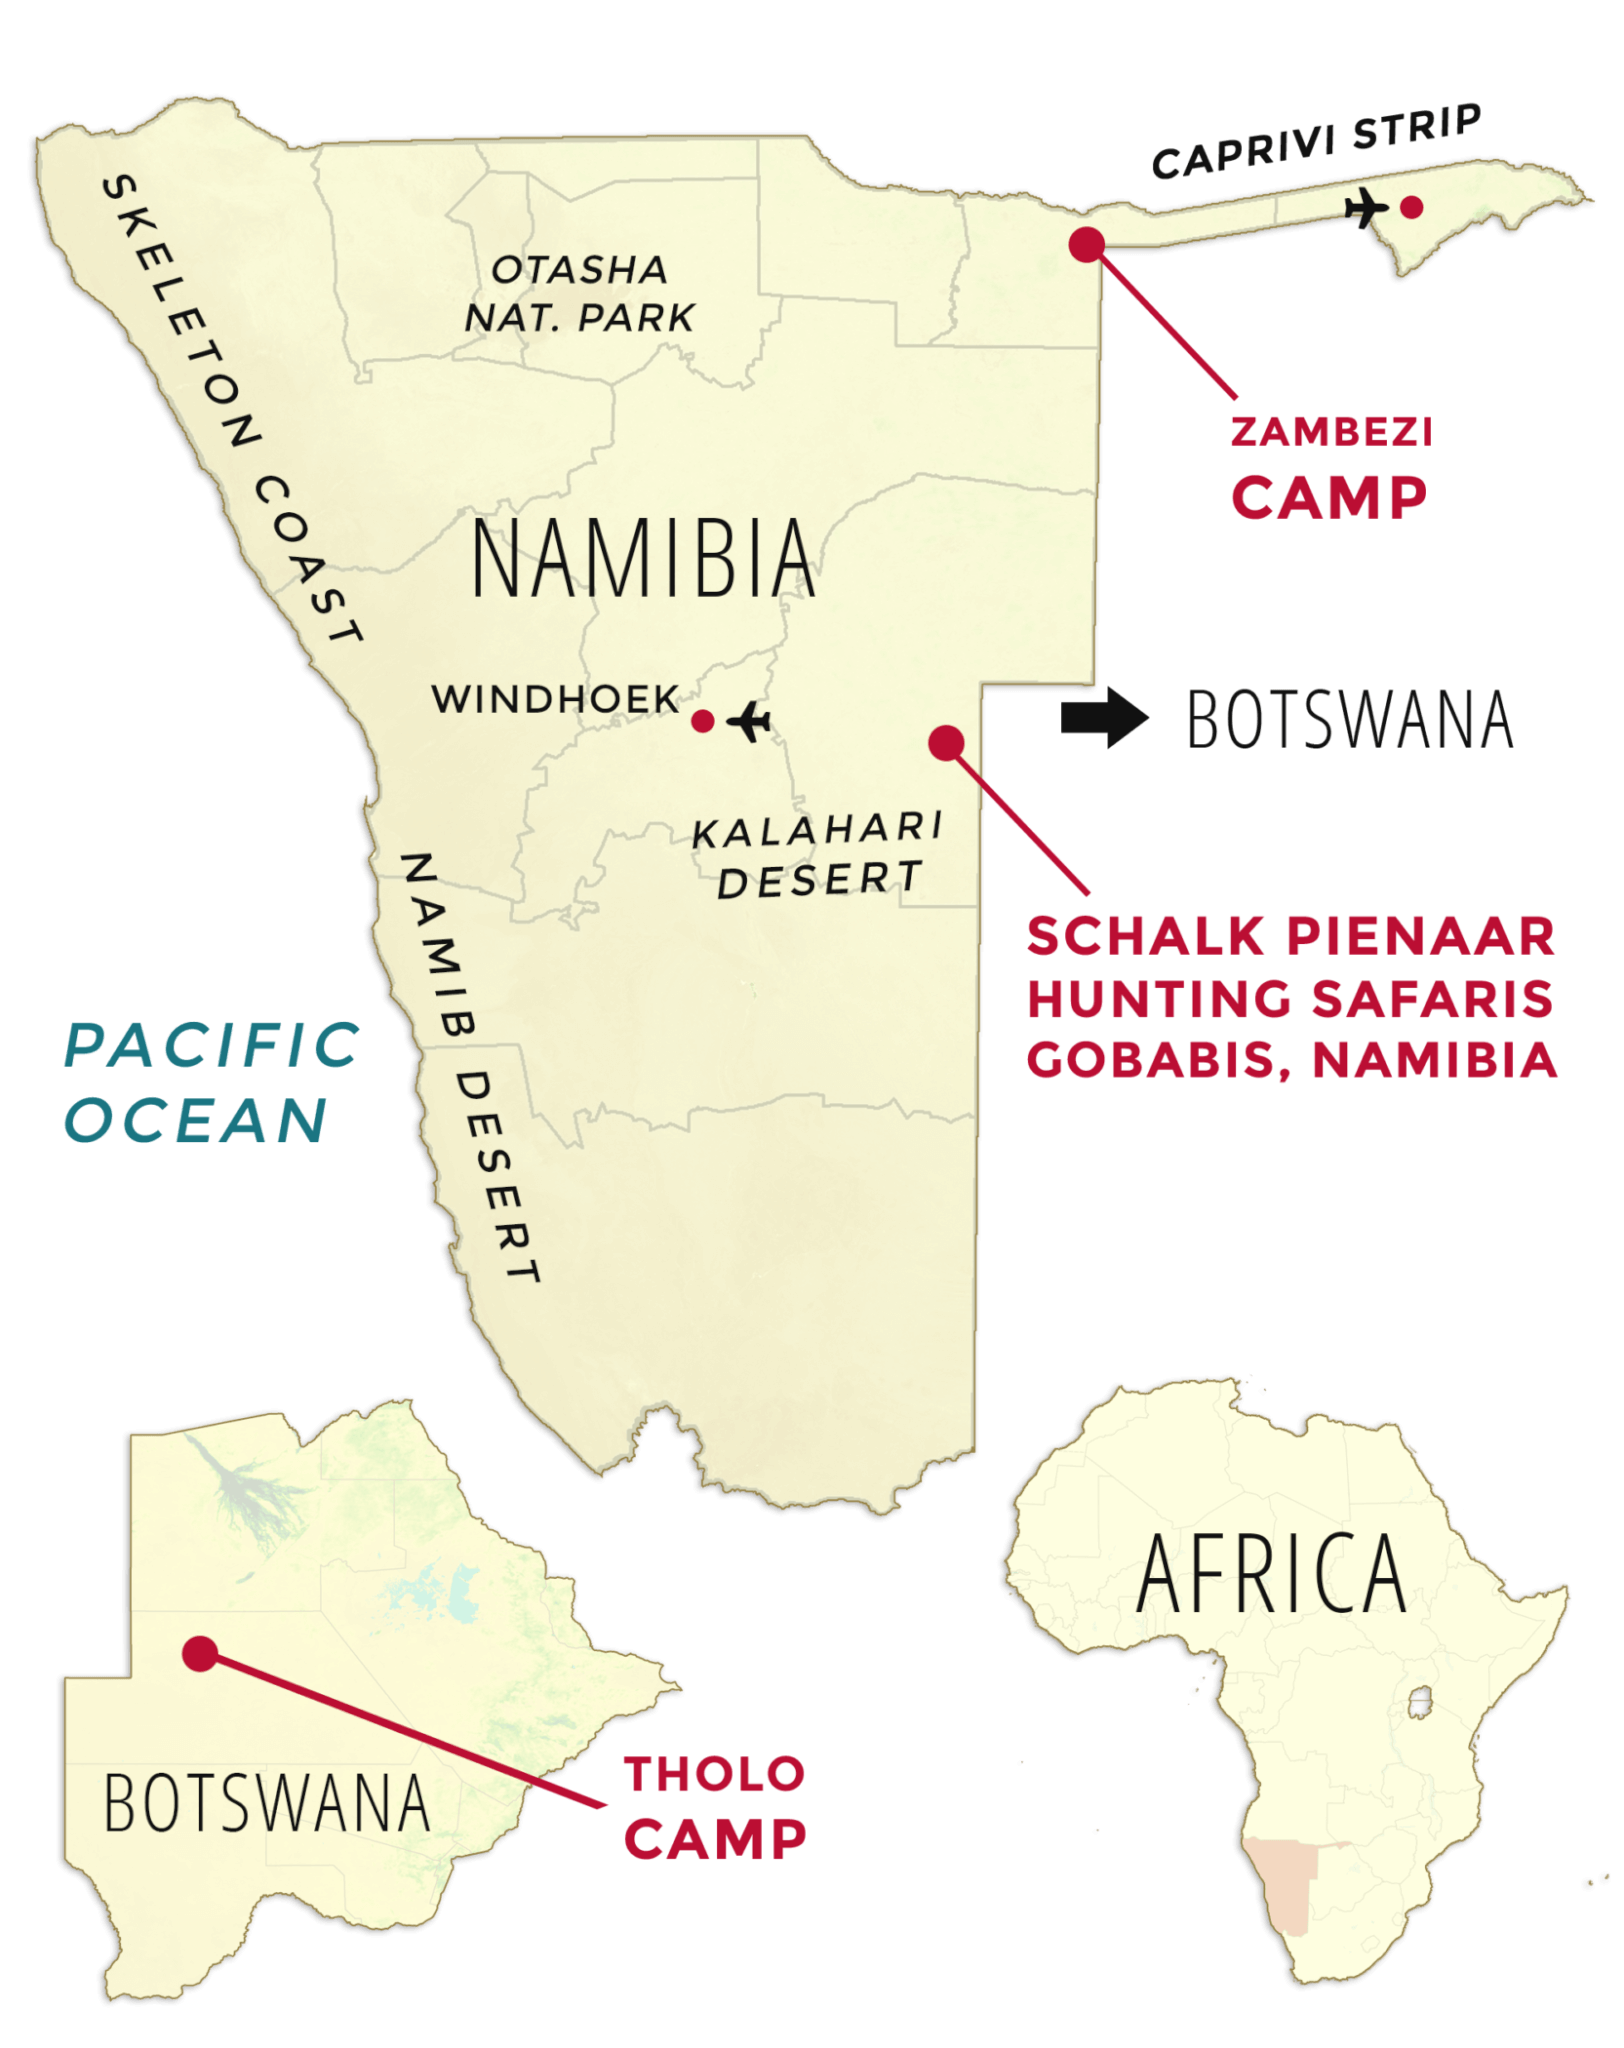 Schalk Pienaar Safaris Namibia ~ Our Map